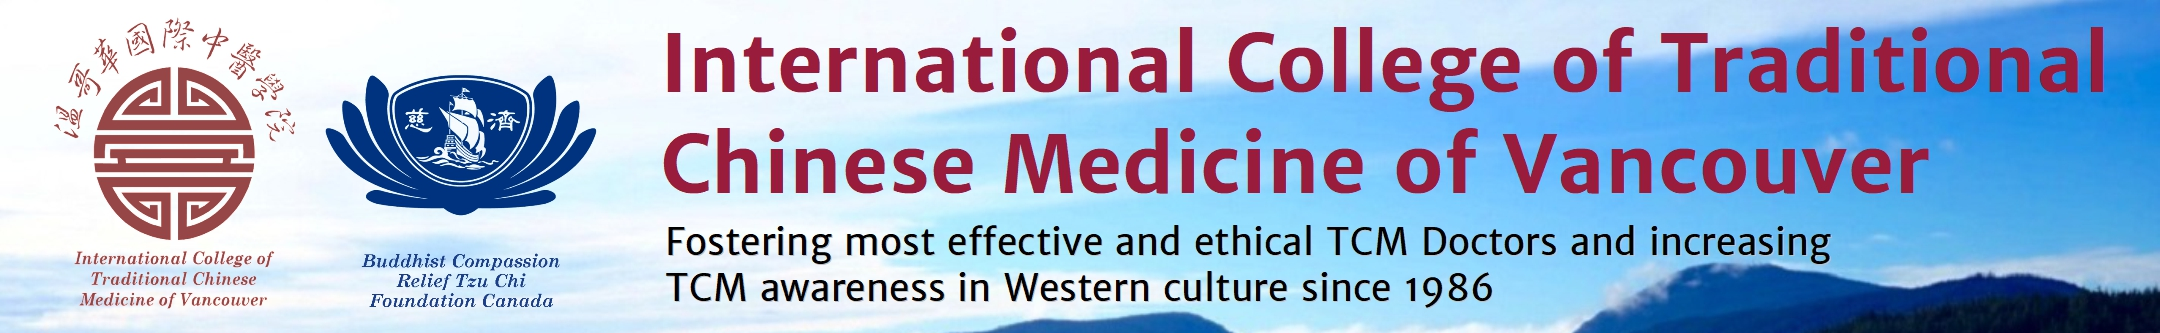 International College of Traditional Chinese Medicine of Vancouver 溫哥華國際中醫學院